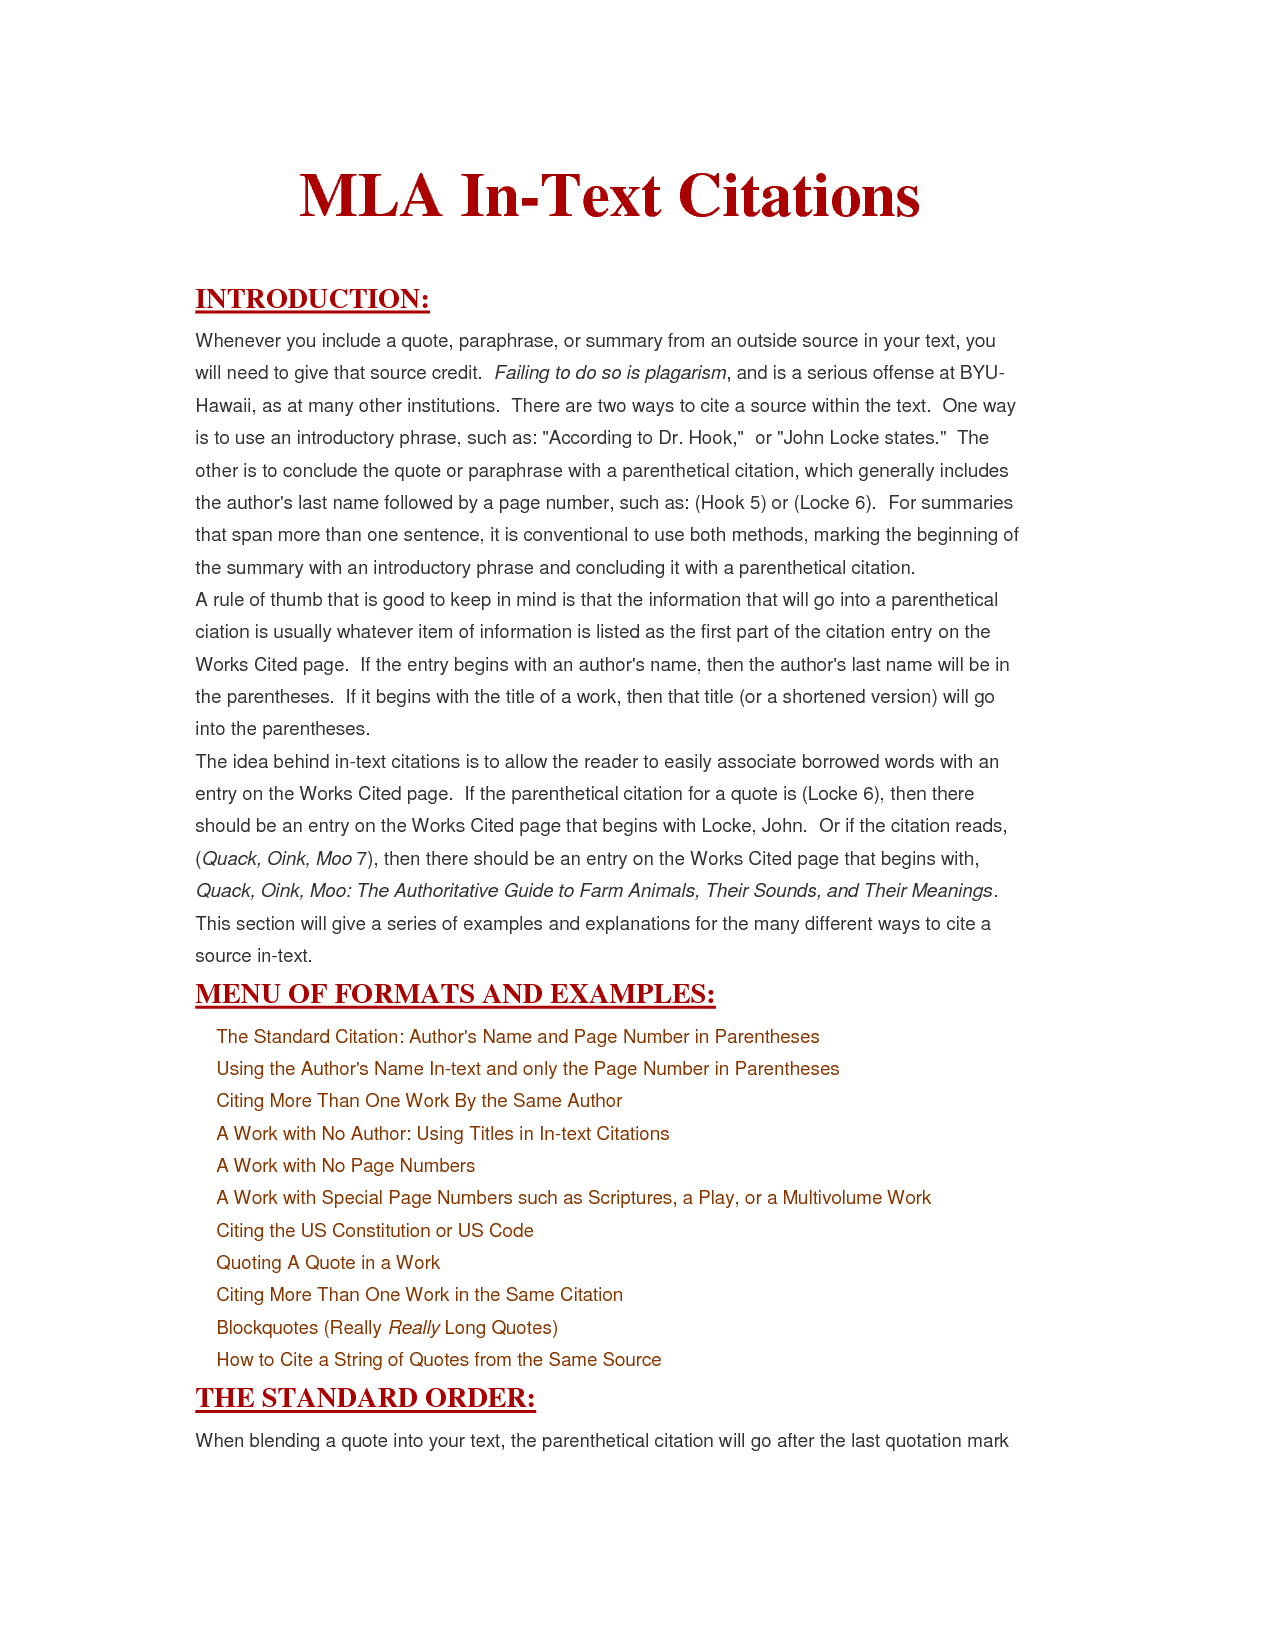 How to Cite a Poem: The Ultimate MLA Formatting Style Guide